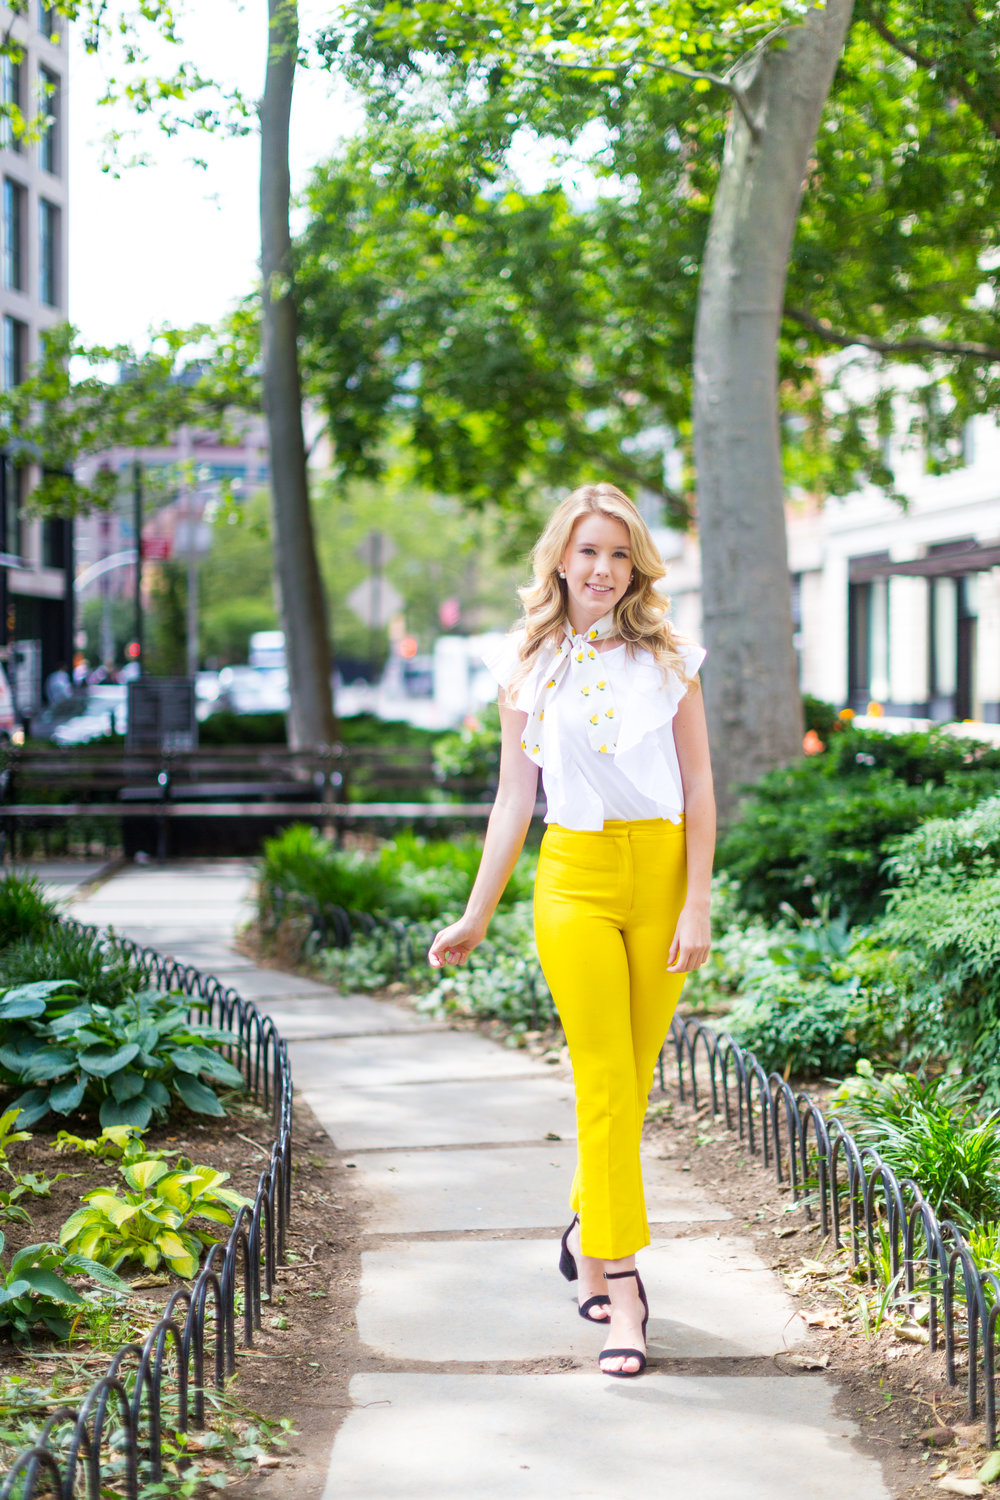 NYC Summer Yellow Lemon Print Outfit-11.jpg